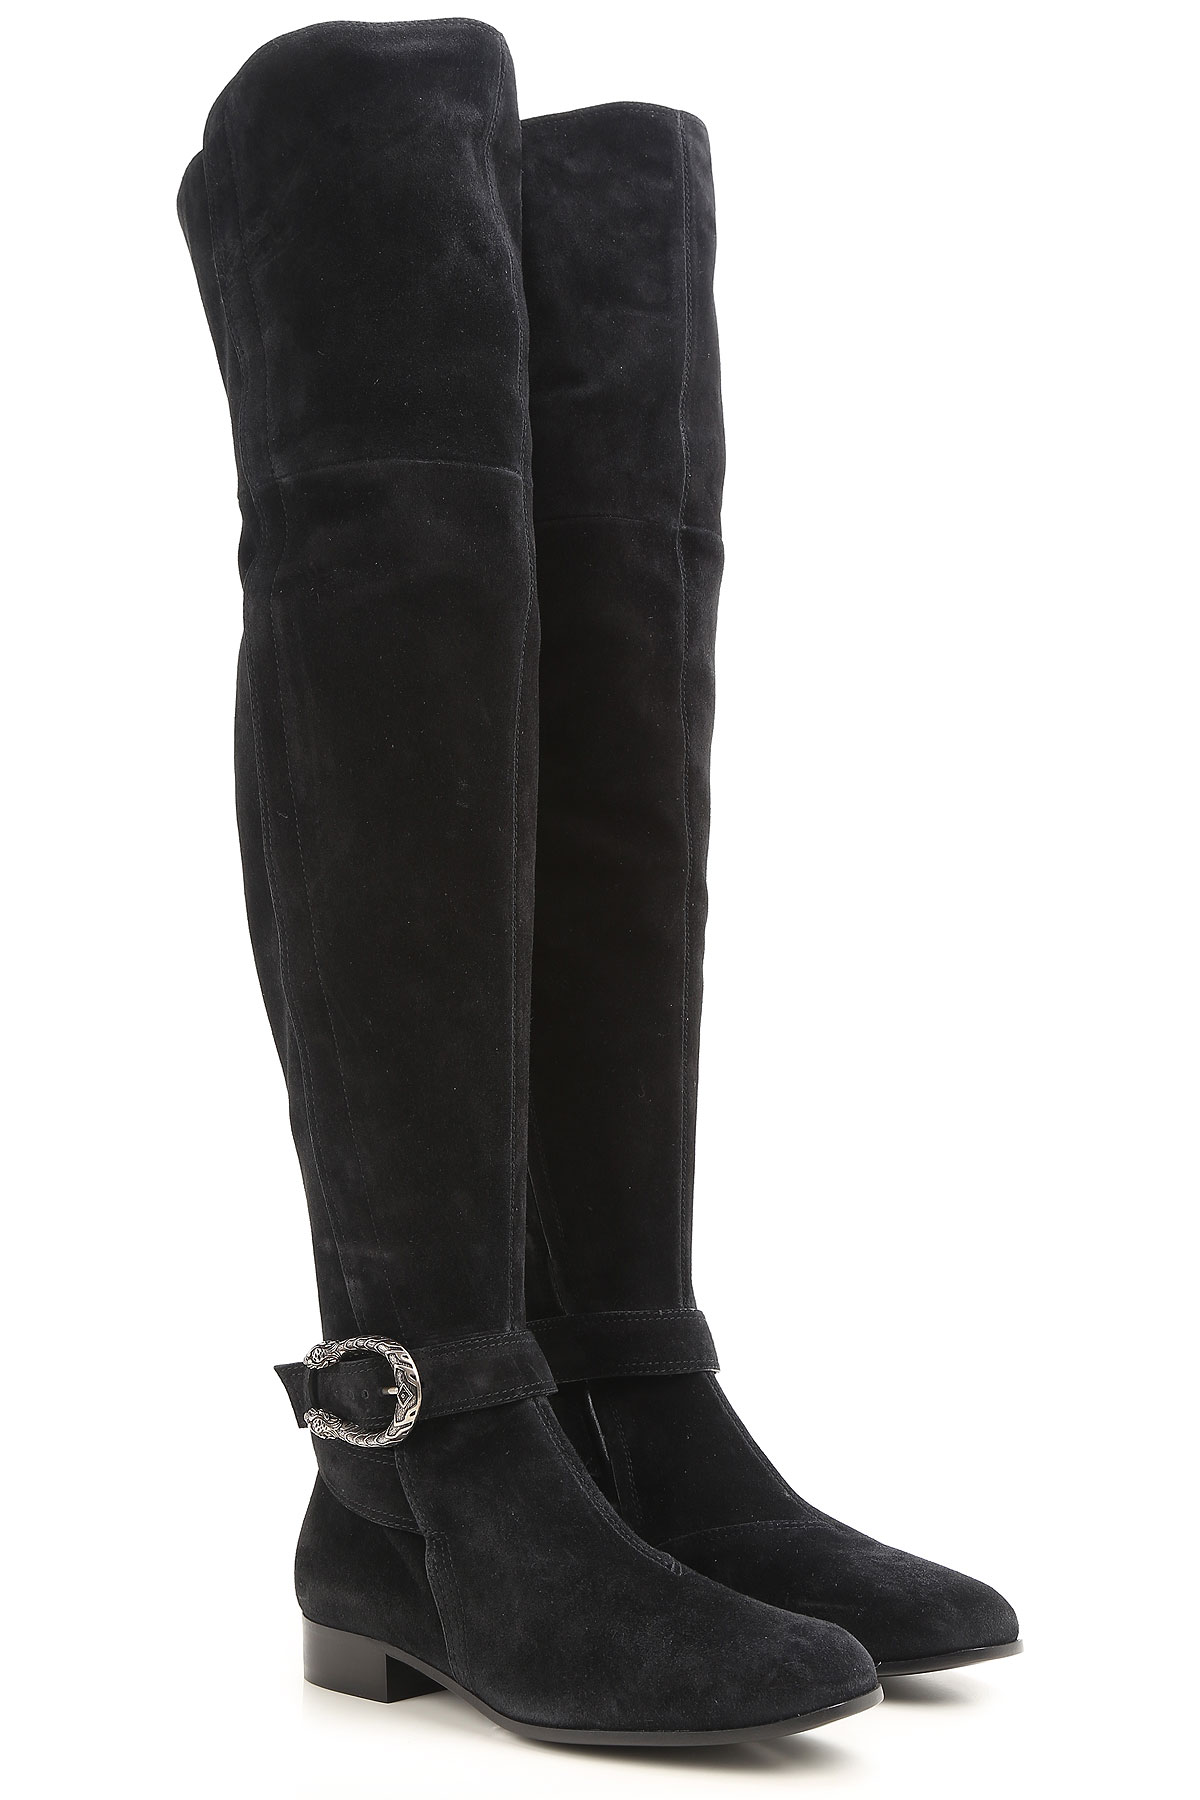 Gucci Boots for Women, Booties On Sale in Outlet, Black, Suede leather, 2019, 10 6